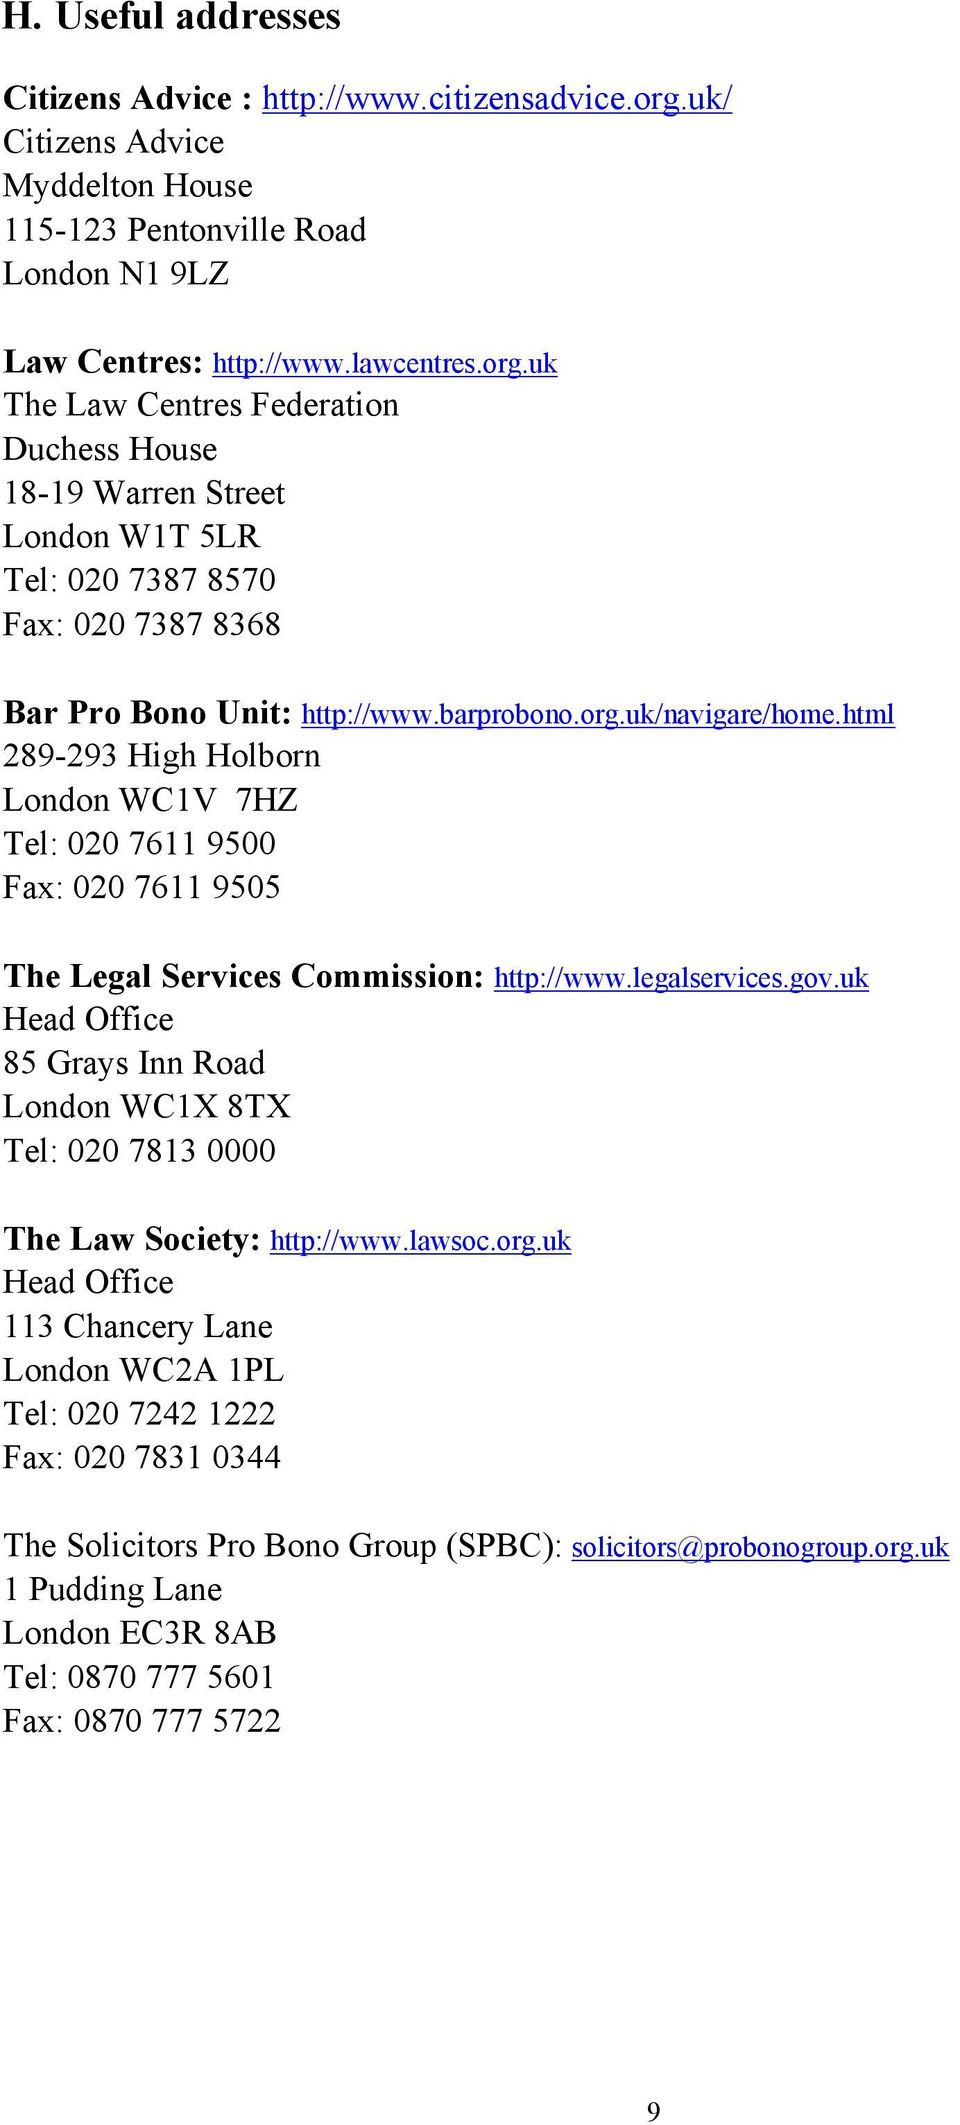 uk The Law Centres Federation Duchess House 18-19 Warren Street London W1T 5LR Tel: 020 7387 8570 Fax: 020 7387 8368 Bar Pro Bono Unit: http://www.barprobono.org.uk/navigare/home.